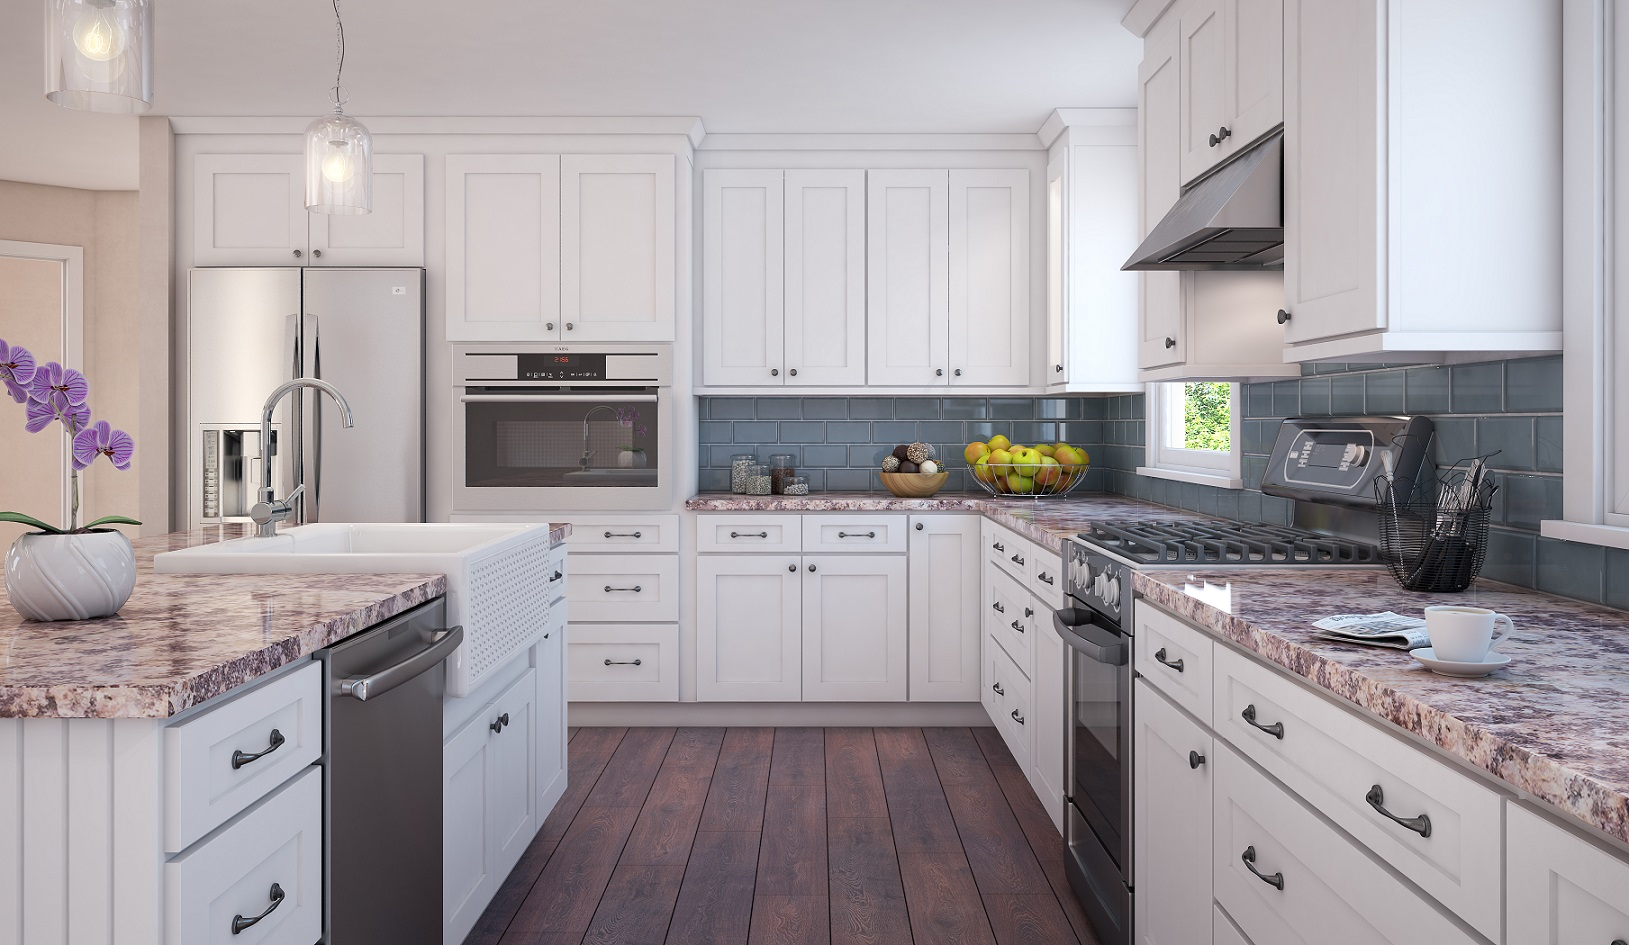 How To Measure Cabinets For Kitchen